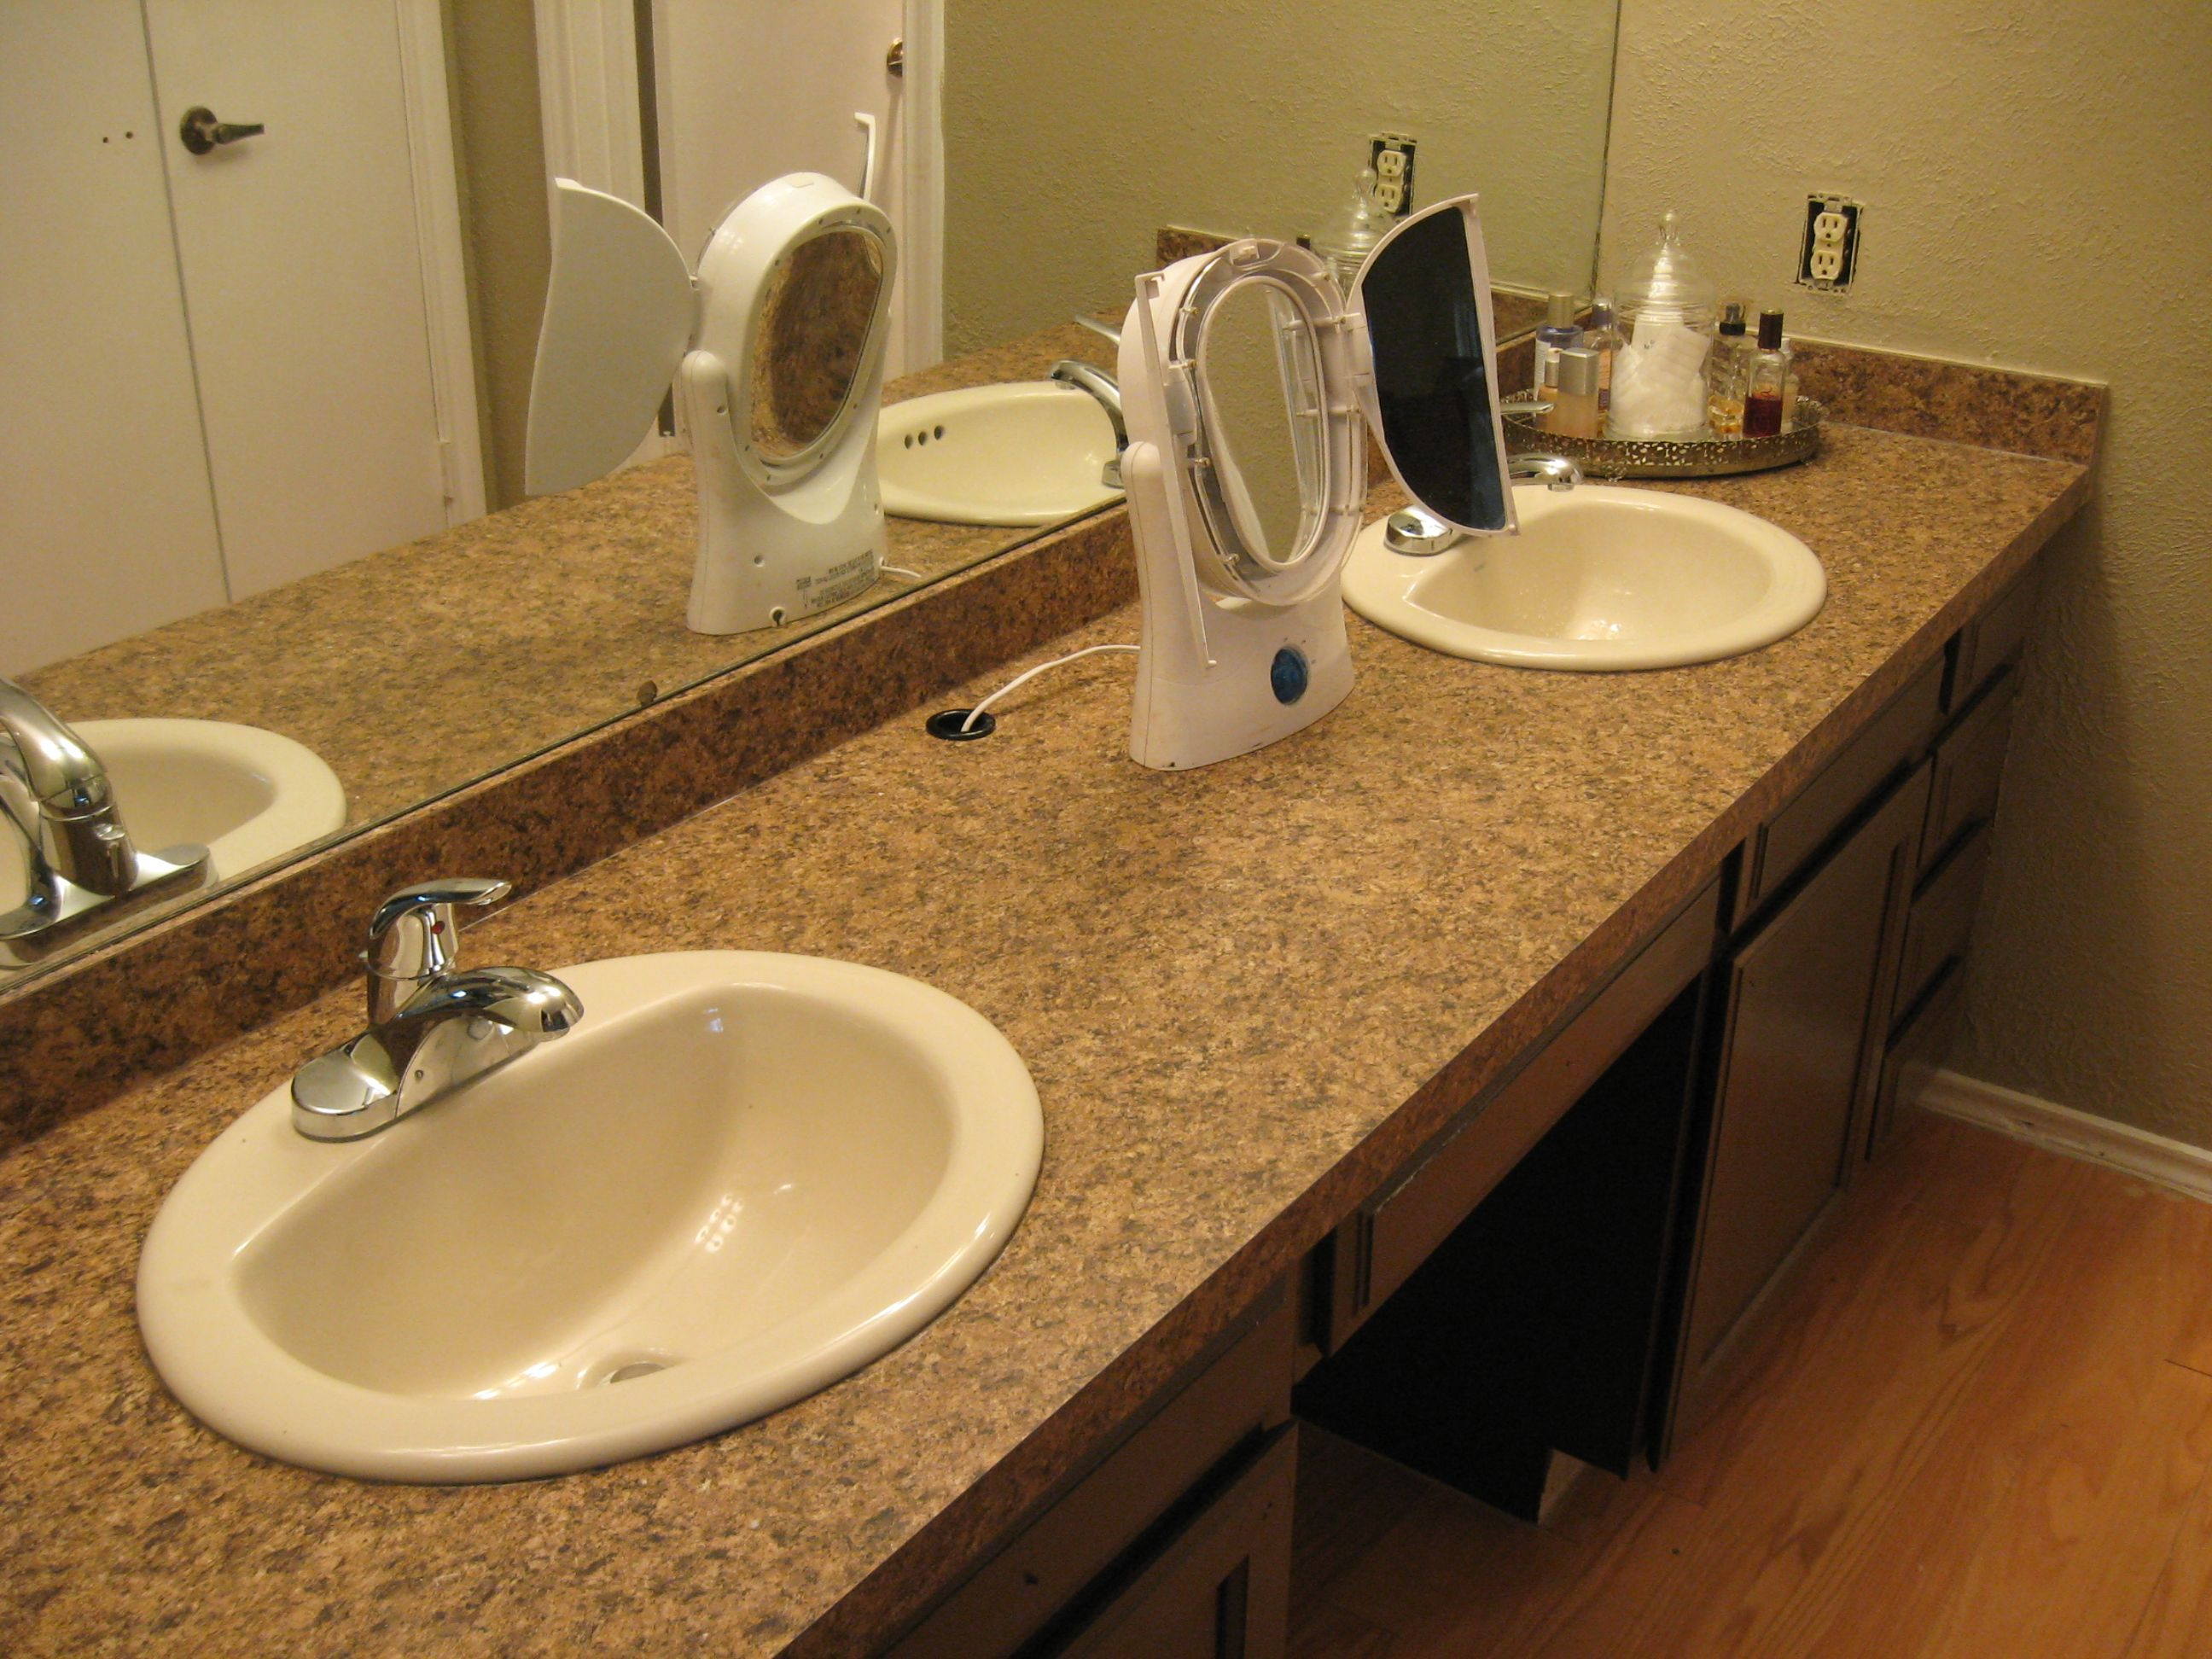 Terrific Bathroom Laminate Countertop Bathroom Decor Ideas Download Free Architecture Designs Scobabritishbridgeorg